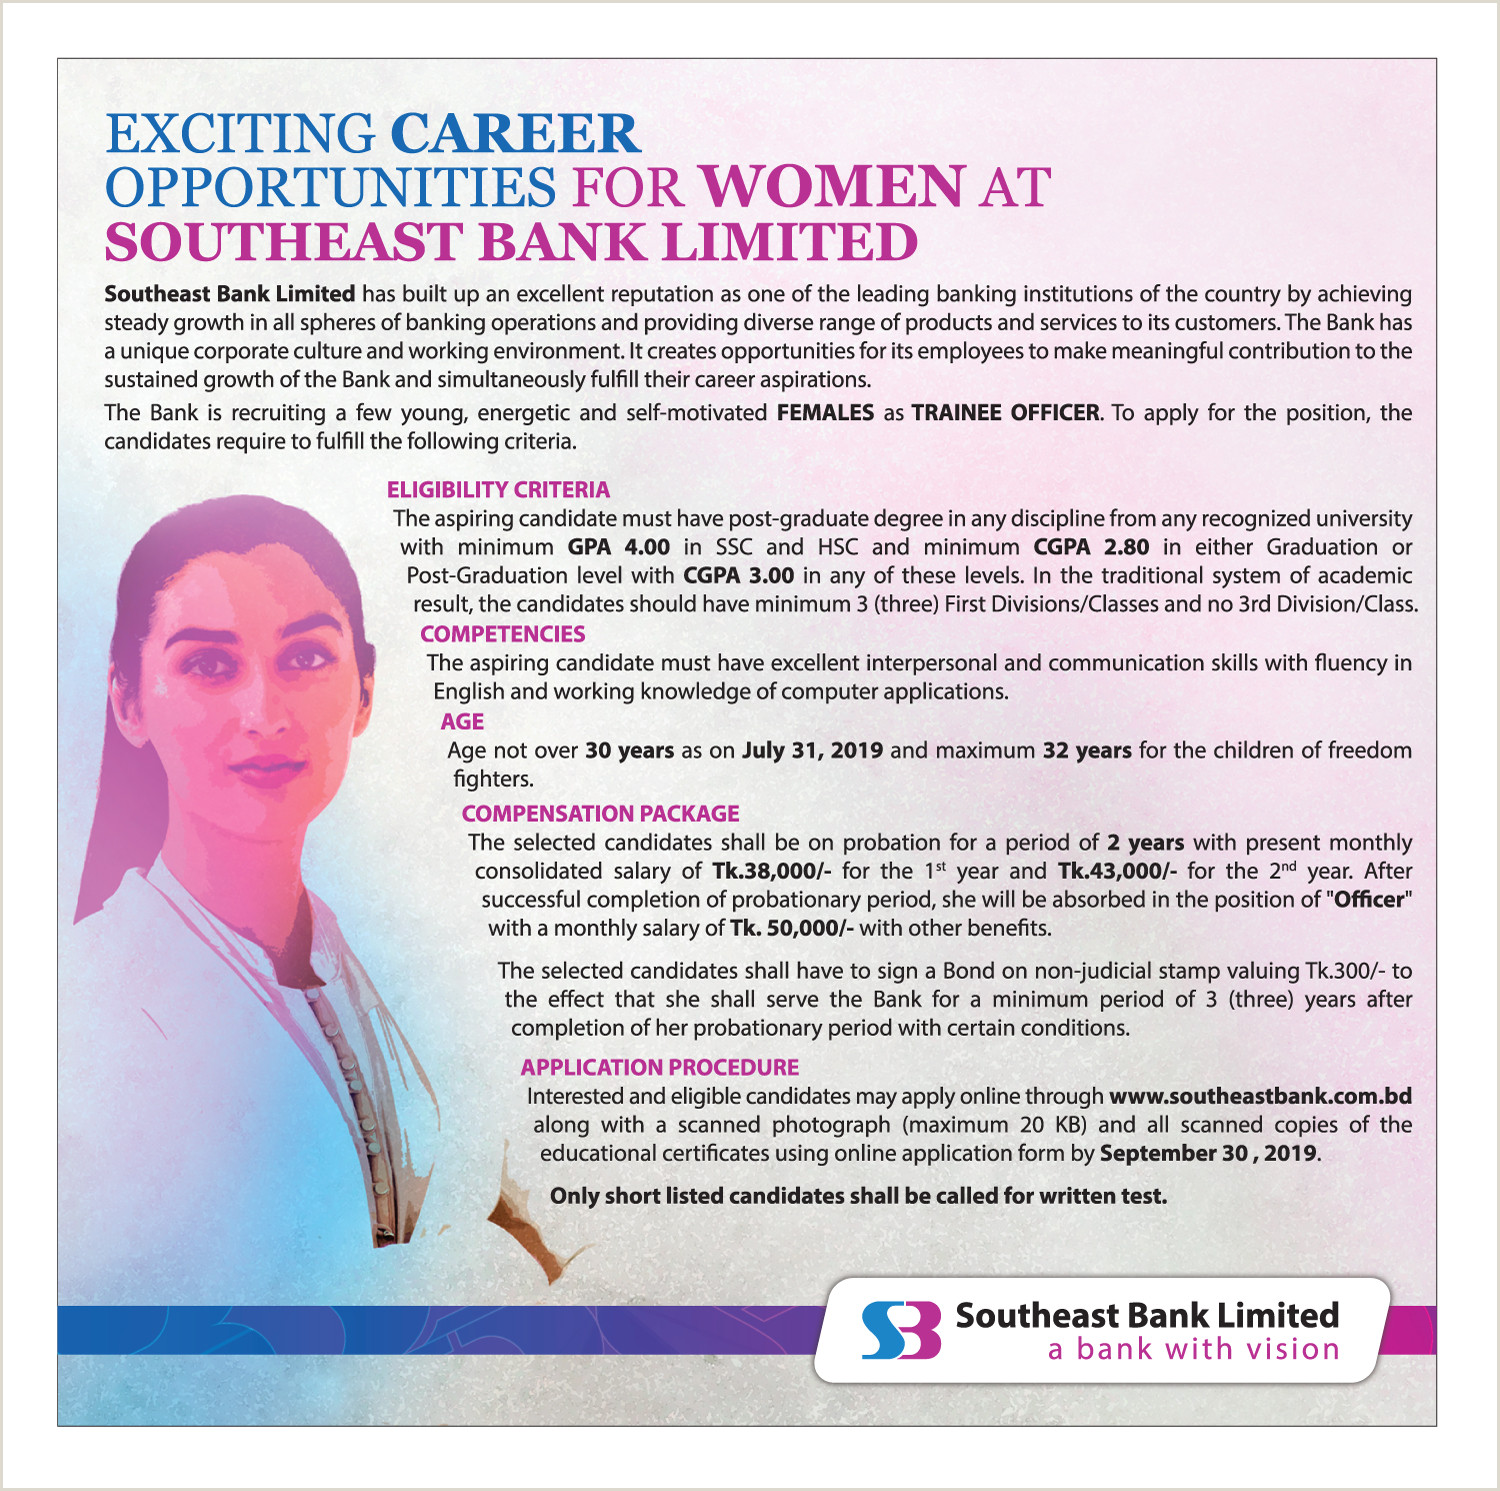 Southeast Bank Ltd